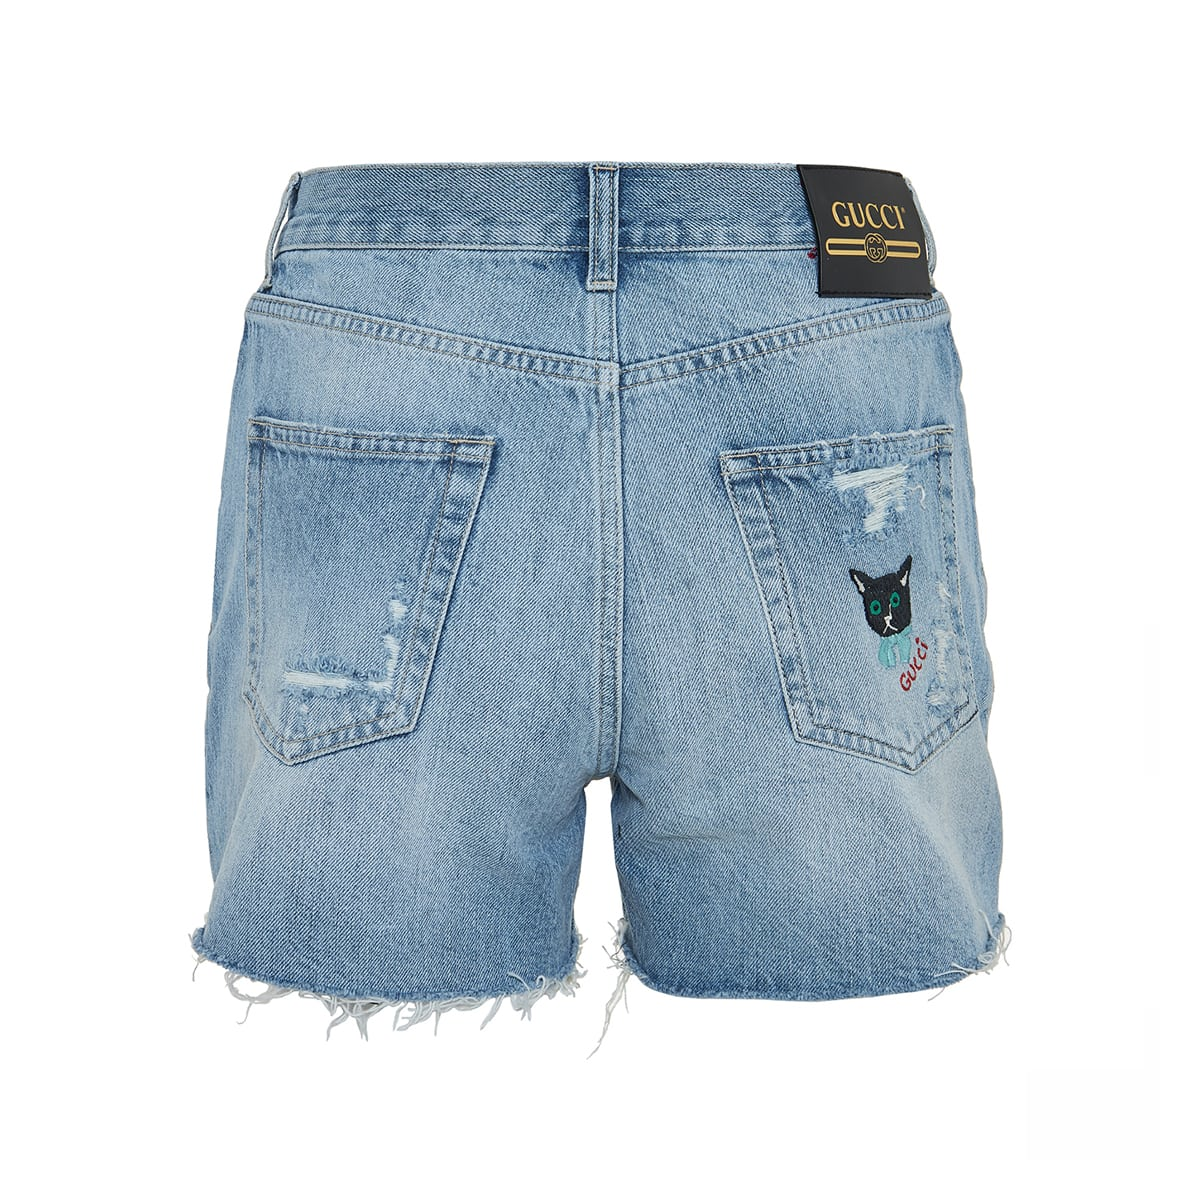 Cat-embroidery ripped denim shorts